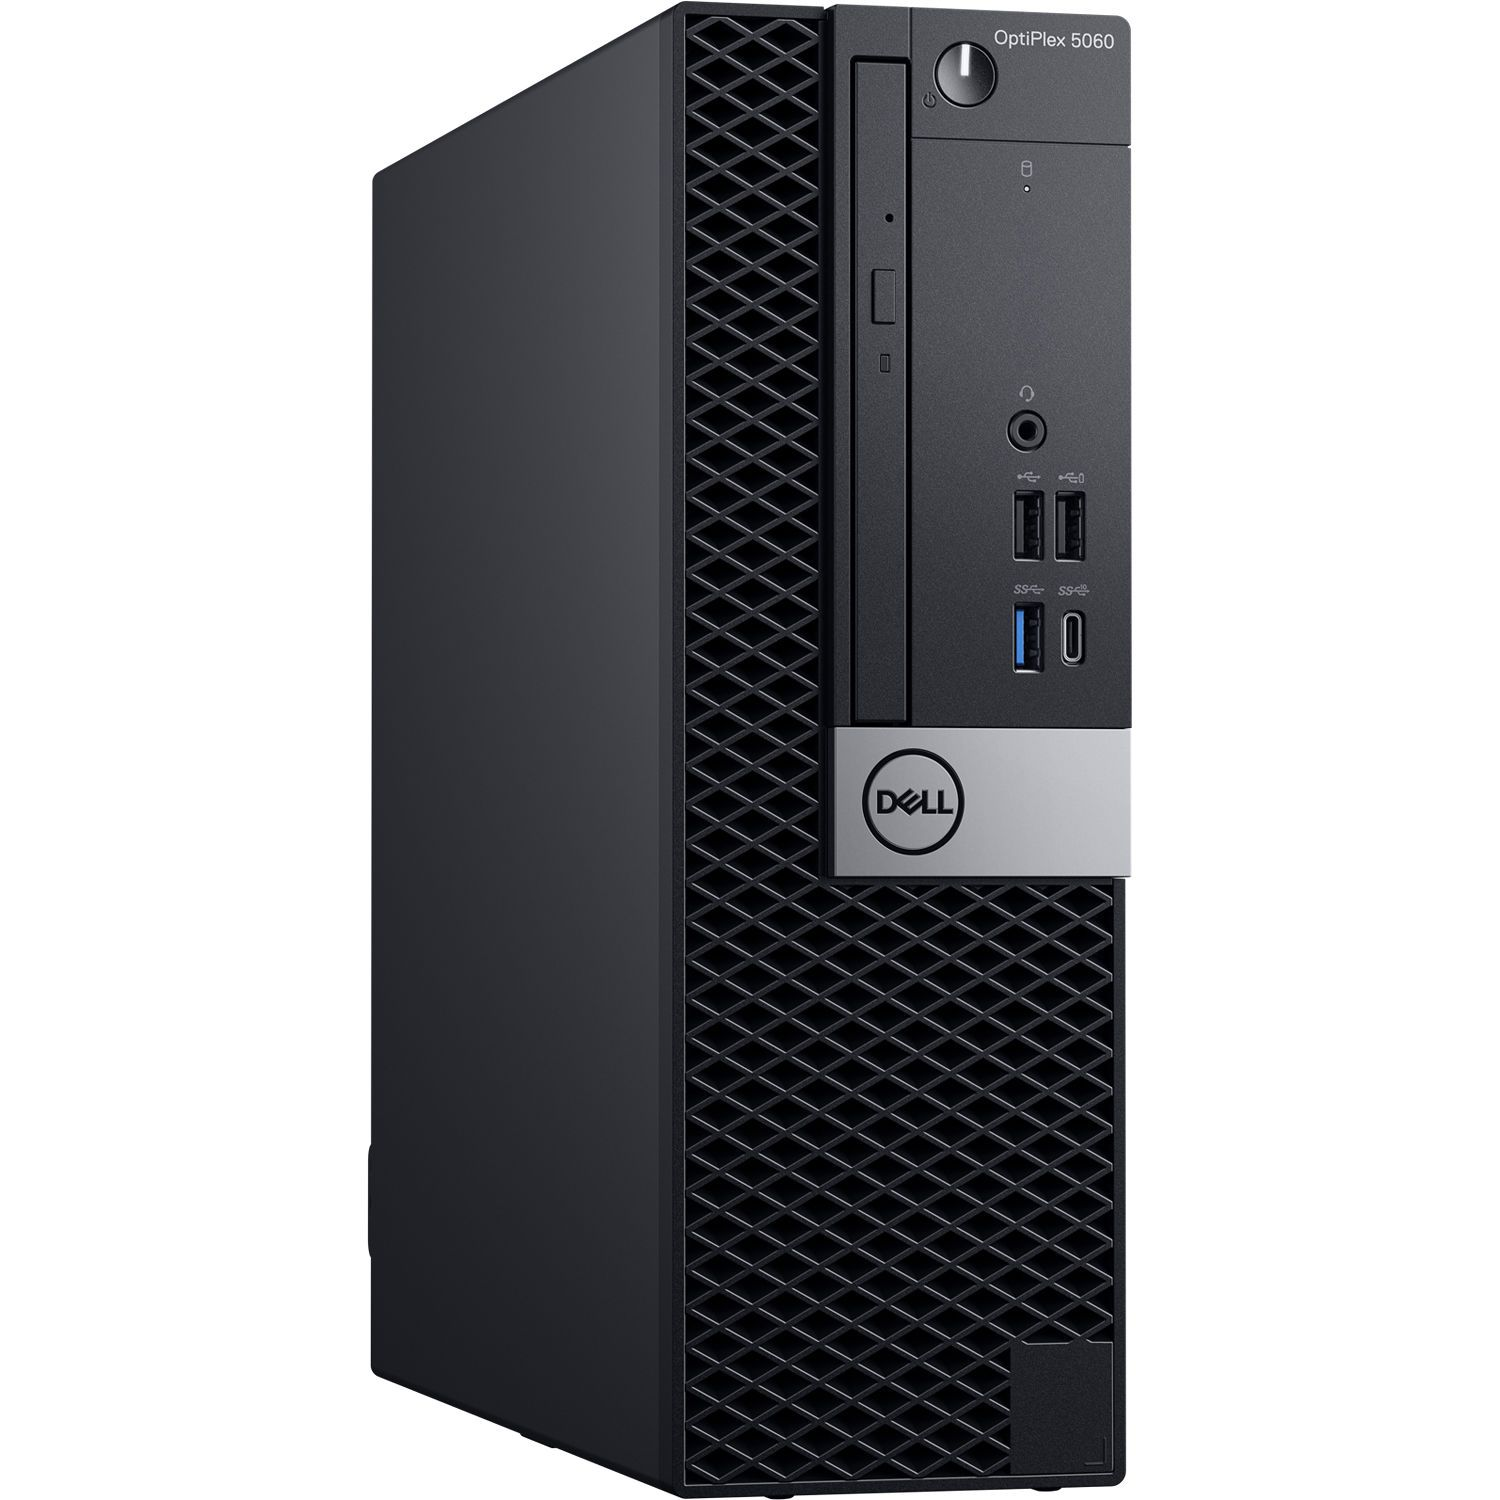 Cpu Dell Optiplex 5060 I5-8400| 8Gb| 500Gb| Dvdrw| W10Pro Sff